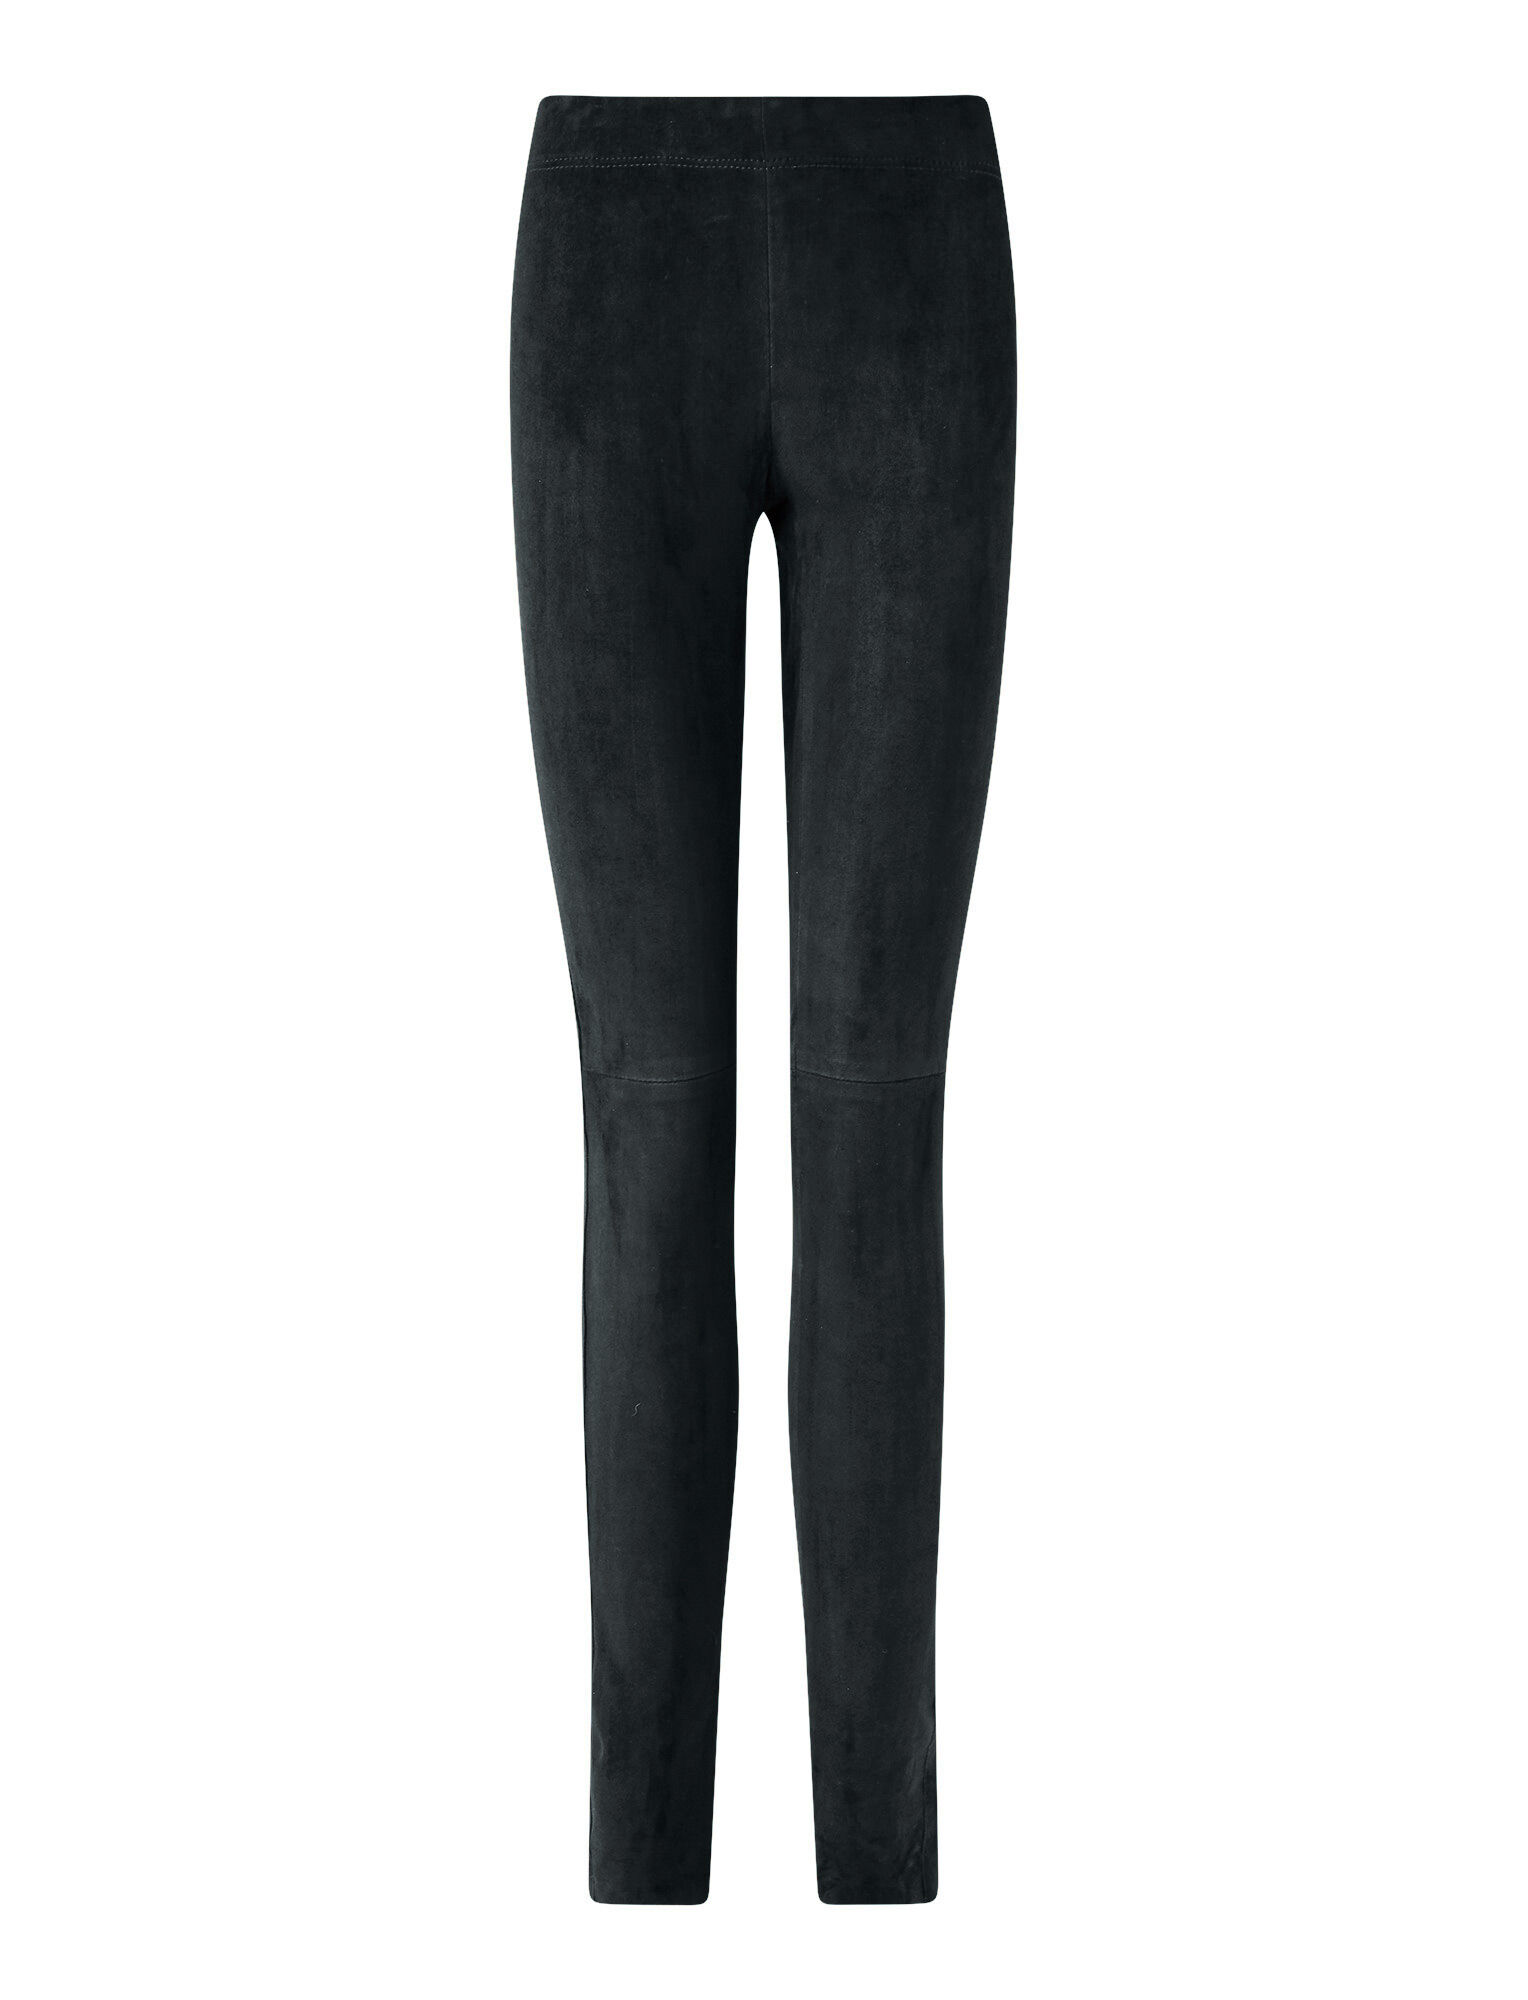 Joseph, Suede Stretch Legging, in Petrol